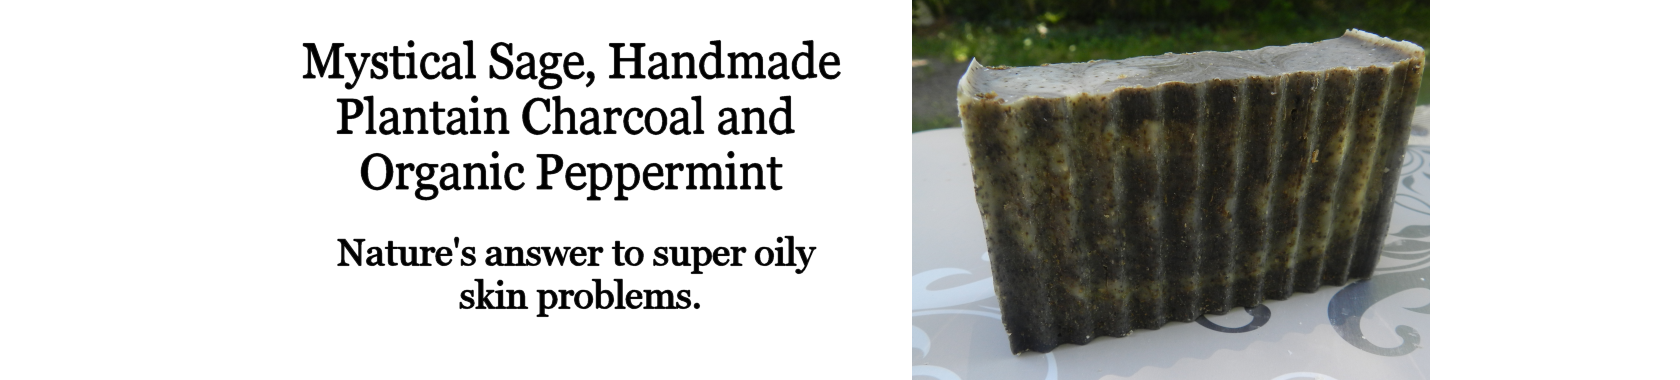 Lard and Lye Soap with Plantain Charcoal, Peppermint  and Sage